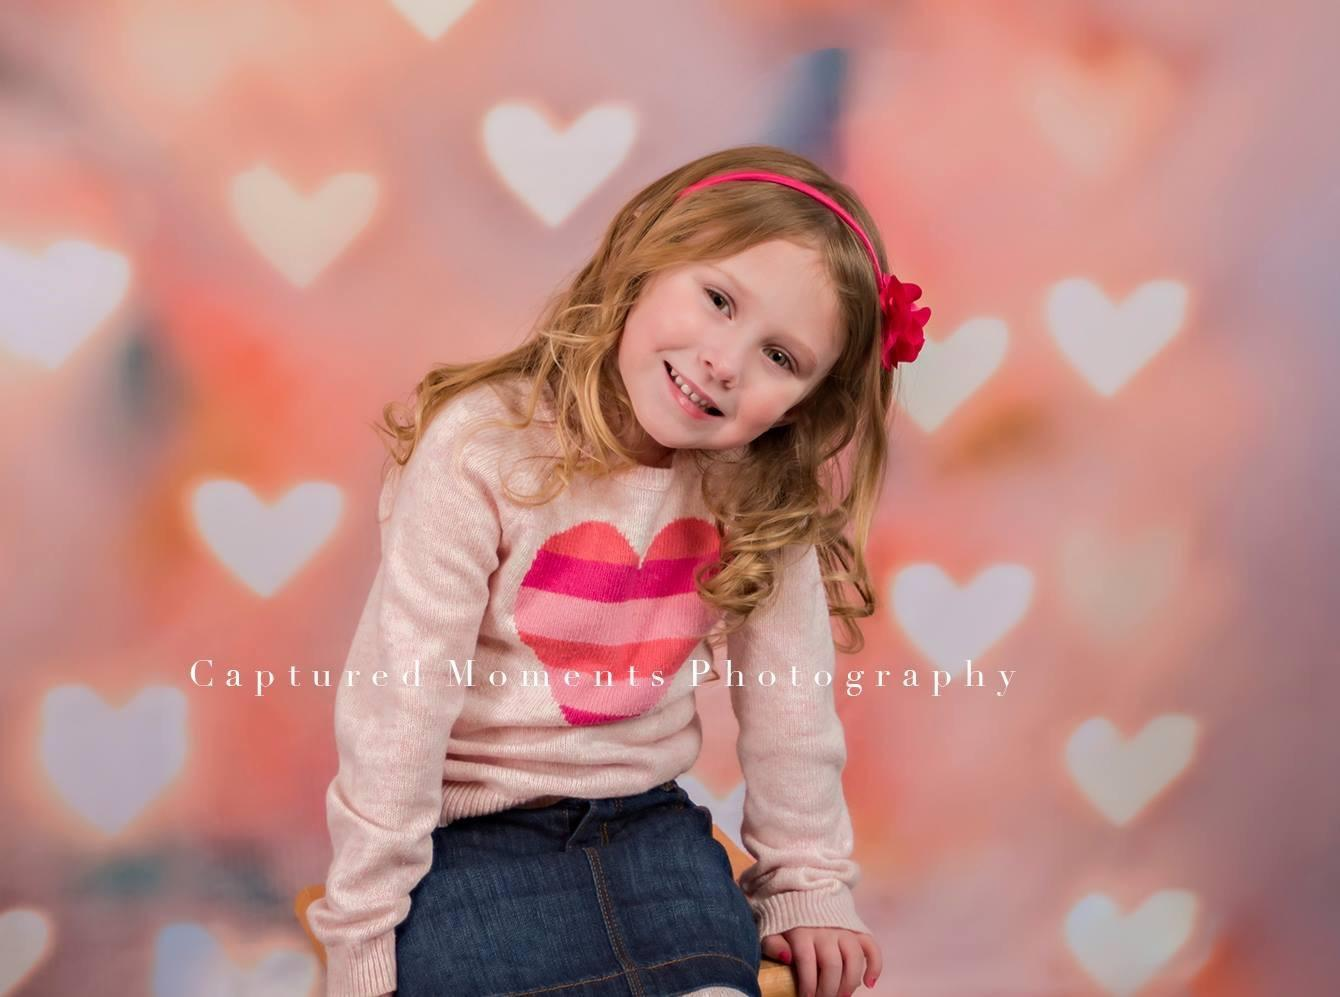 Load image into Gallery viewer, Kate Bright Light Pink Love Heart Valentine's Day Backdrops for Children Photography - Kate backdrops UK